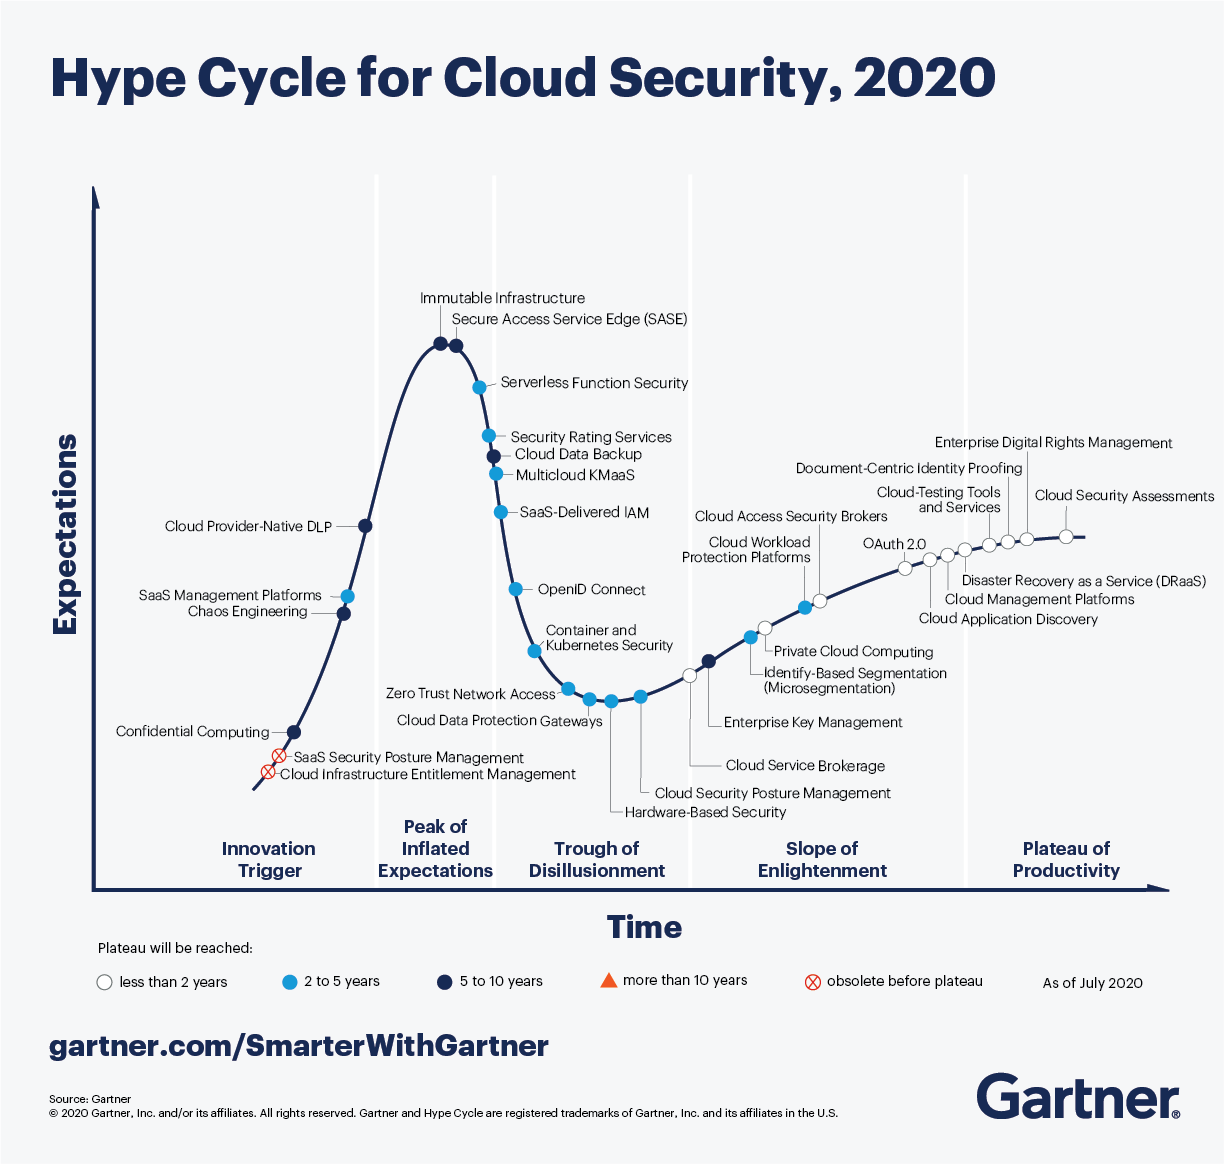 Gartner Hype Cycle for Cloud Security, 2020 shows three technologies to take action now.